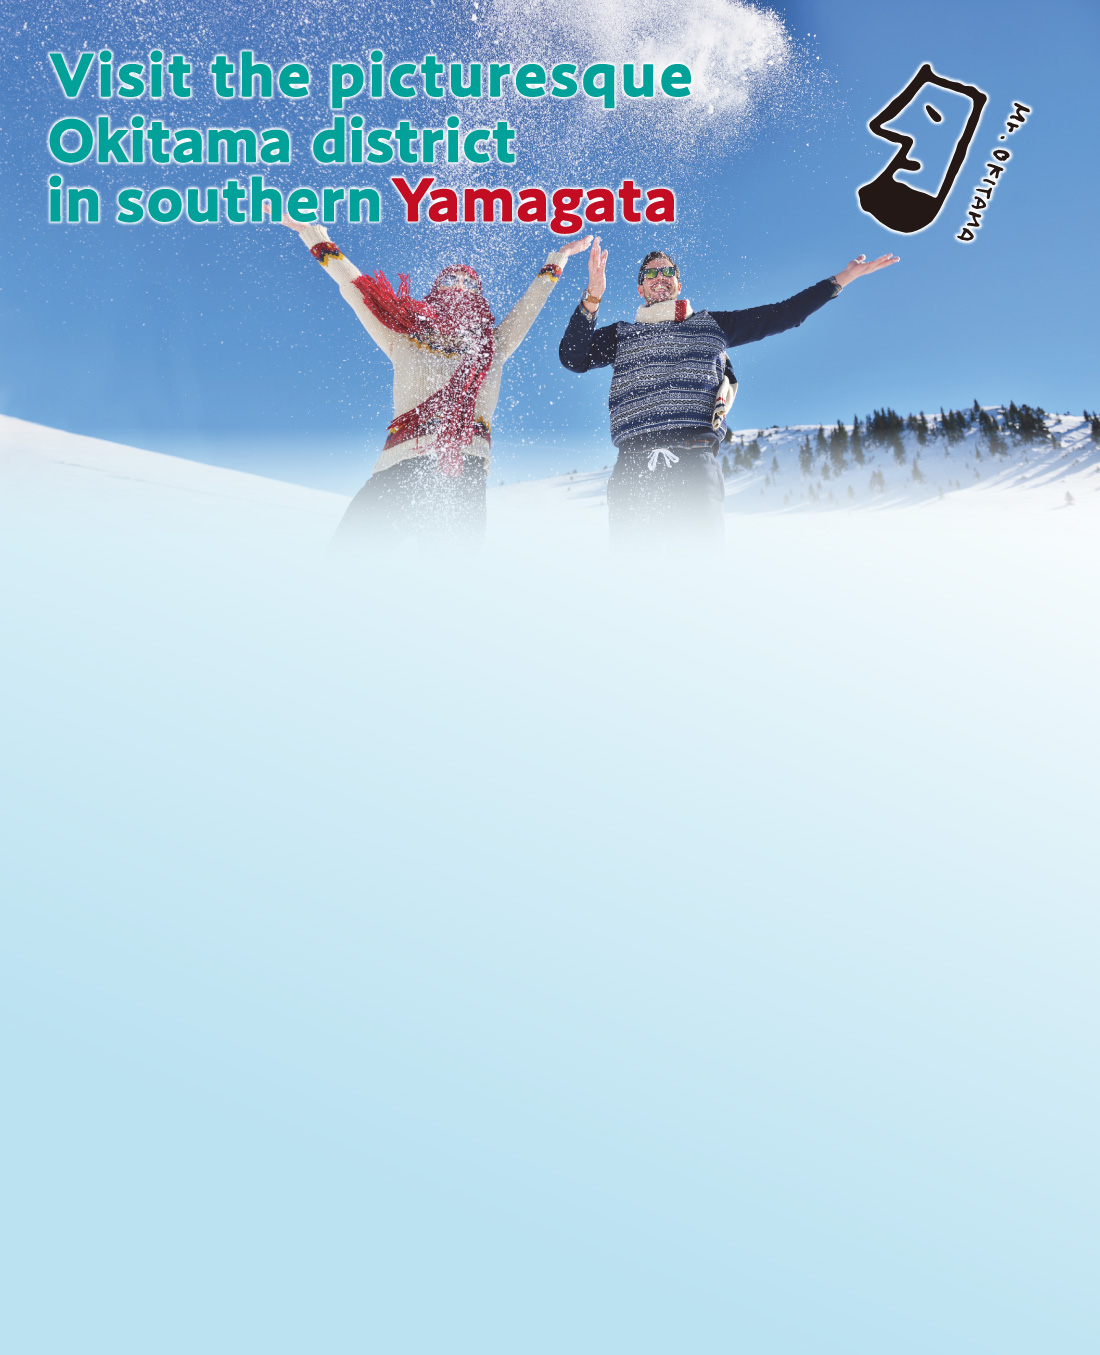 Visit the picturesque Okitama district in southern Yamagata